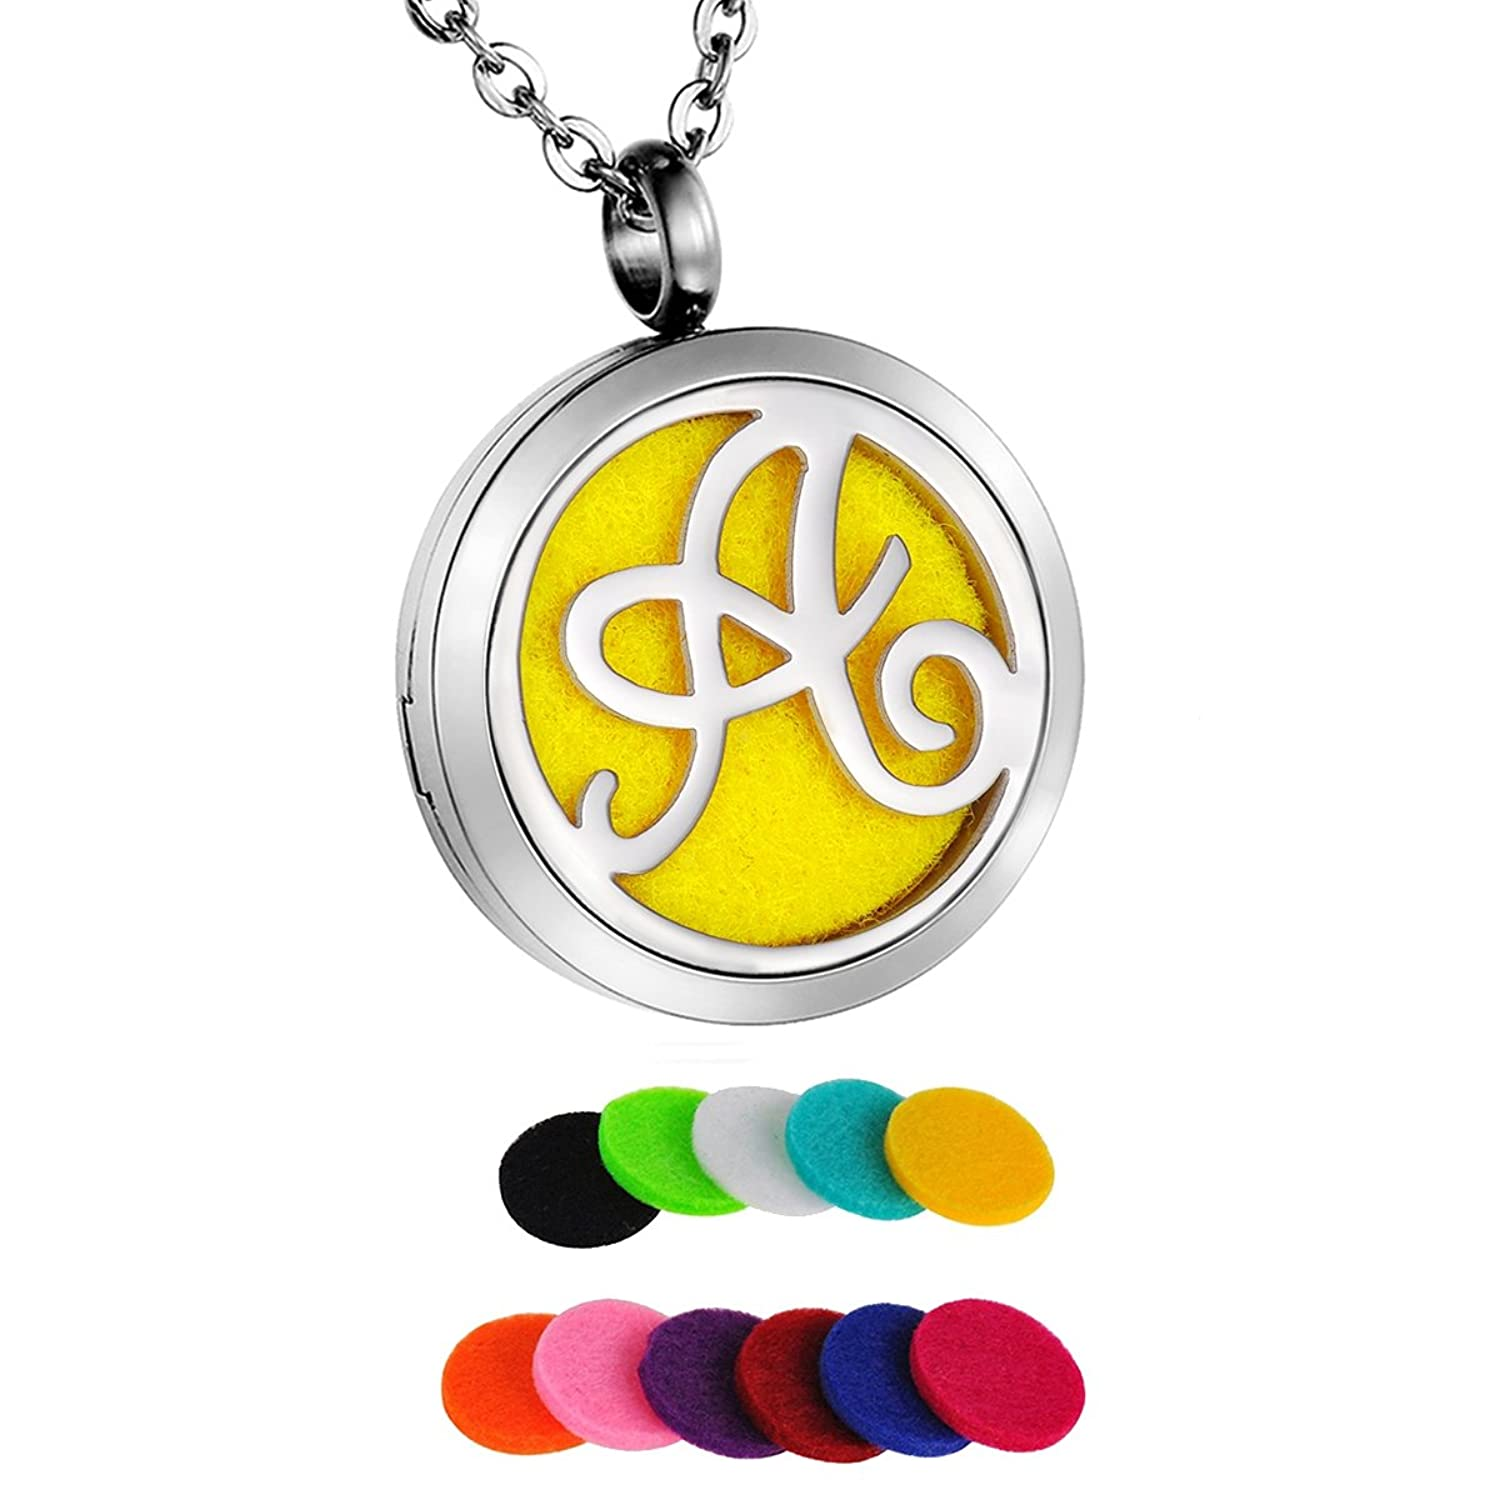 mm in caymancode k gold monogrammed necklace lockets script initial three monogram pendants white